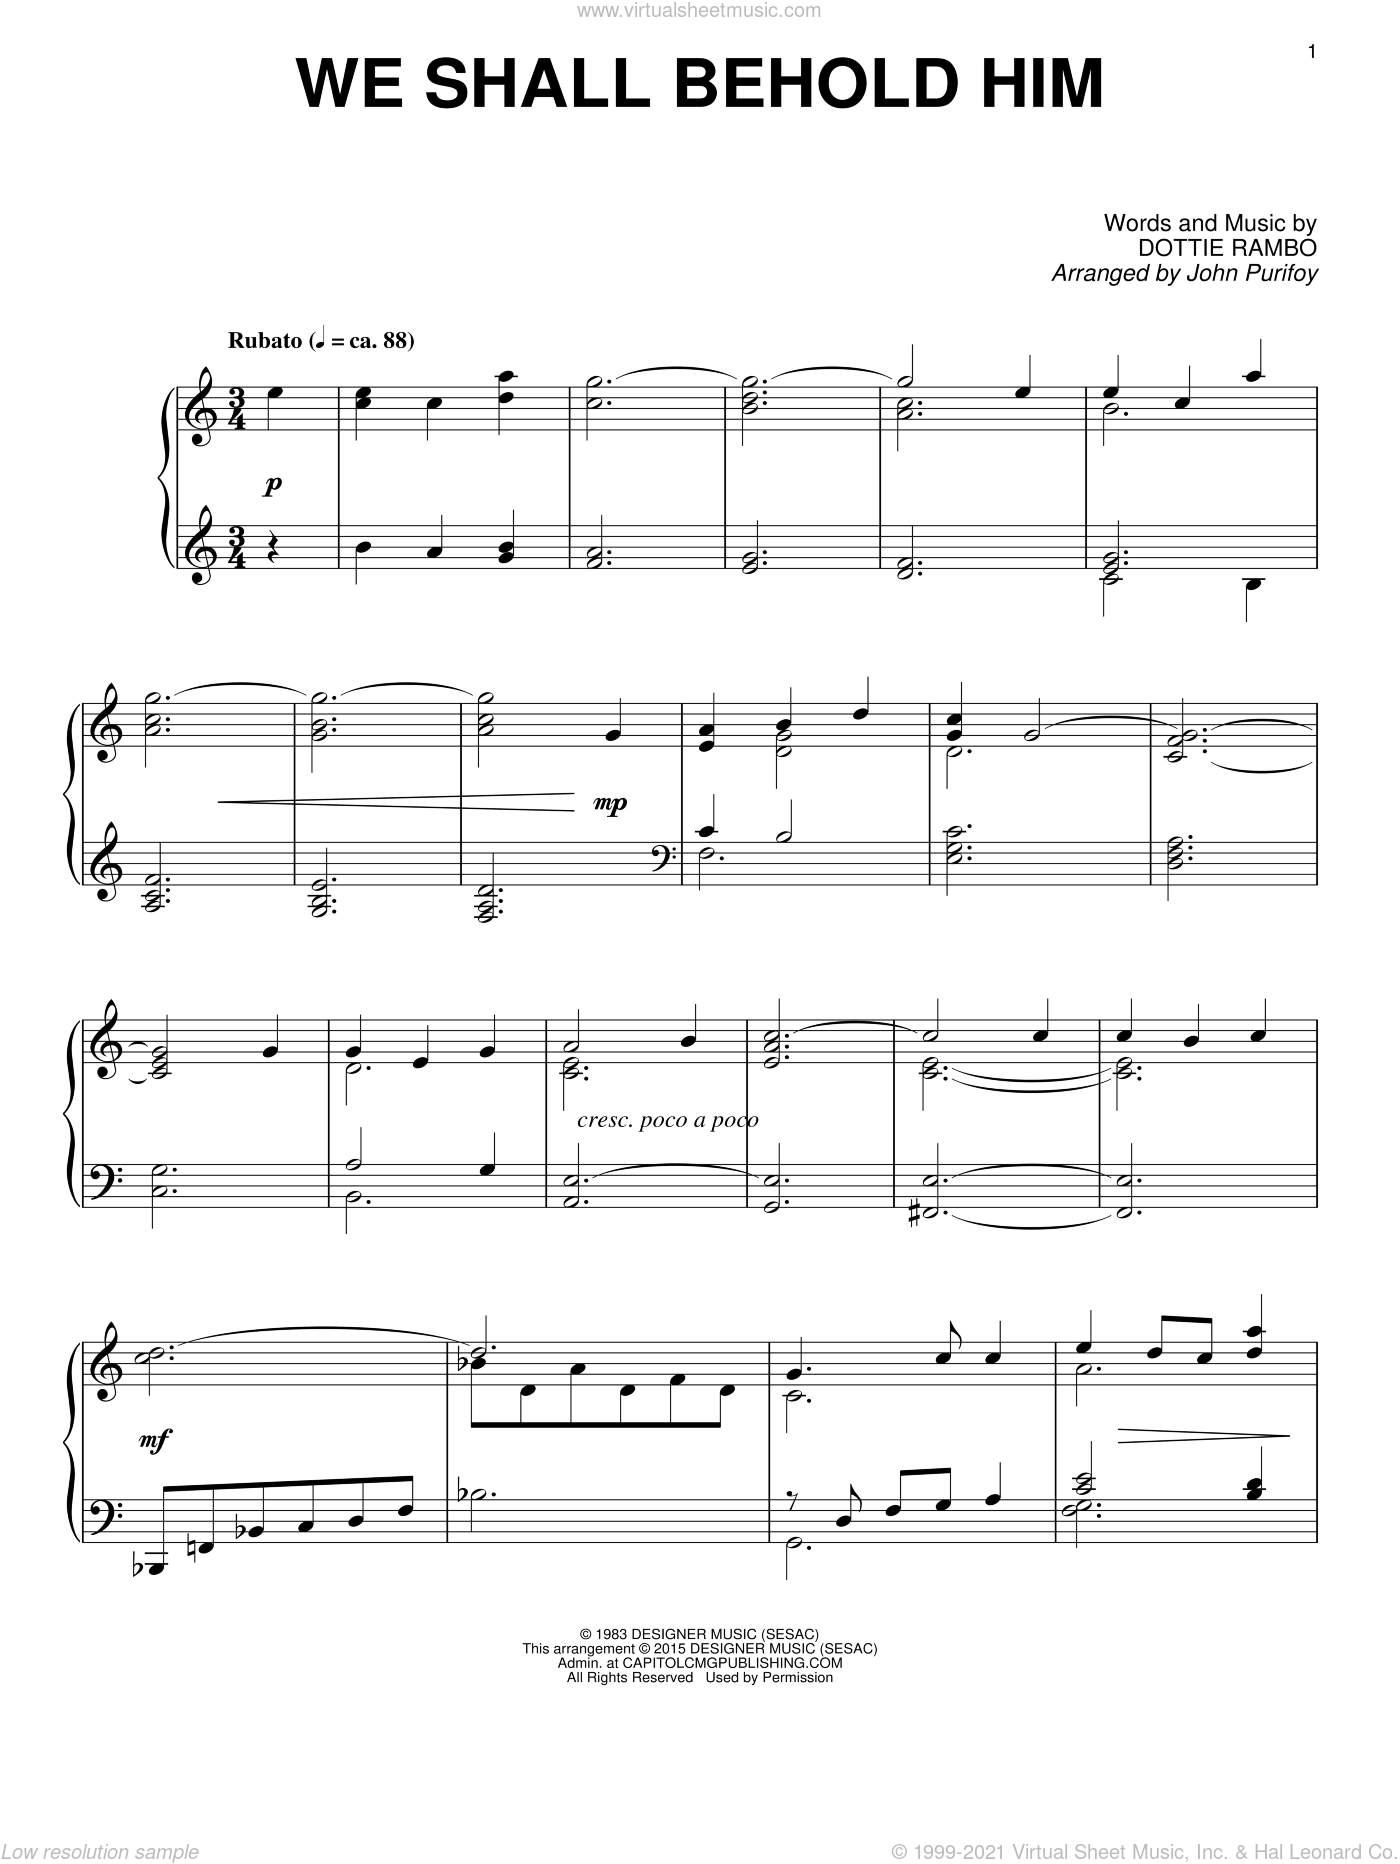 We Shall Behold Him sheet music for piano solo by Dottie Rambo and John Purifoy, intermediate skill level